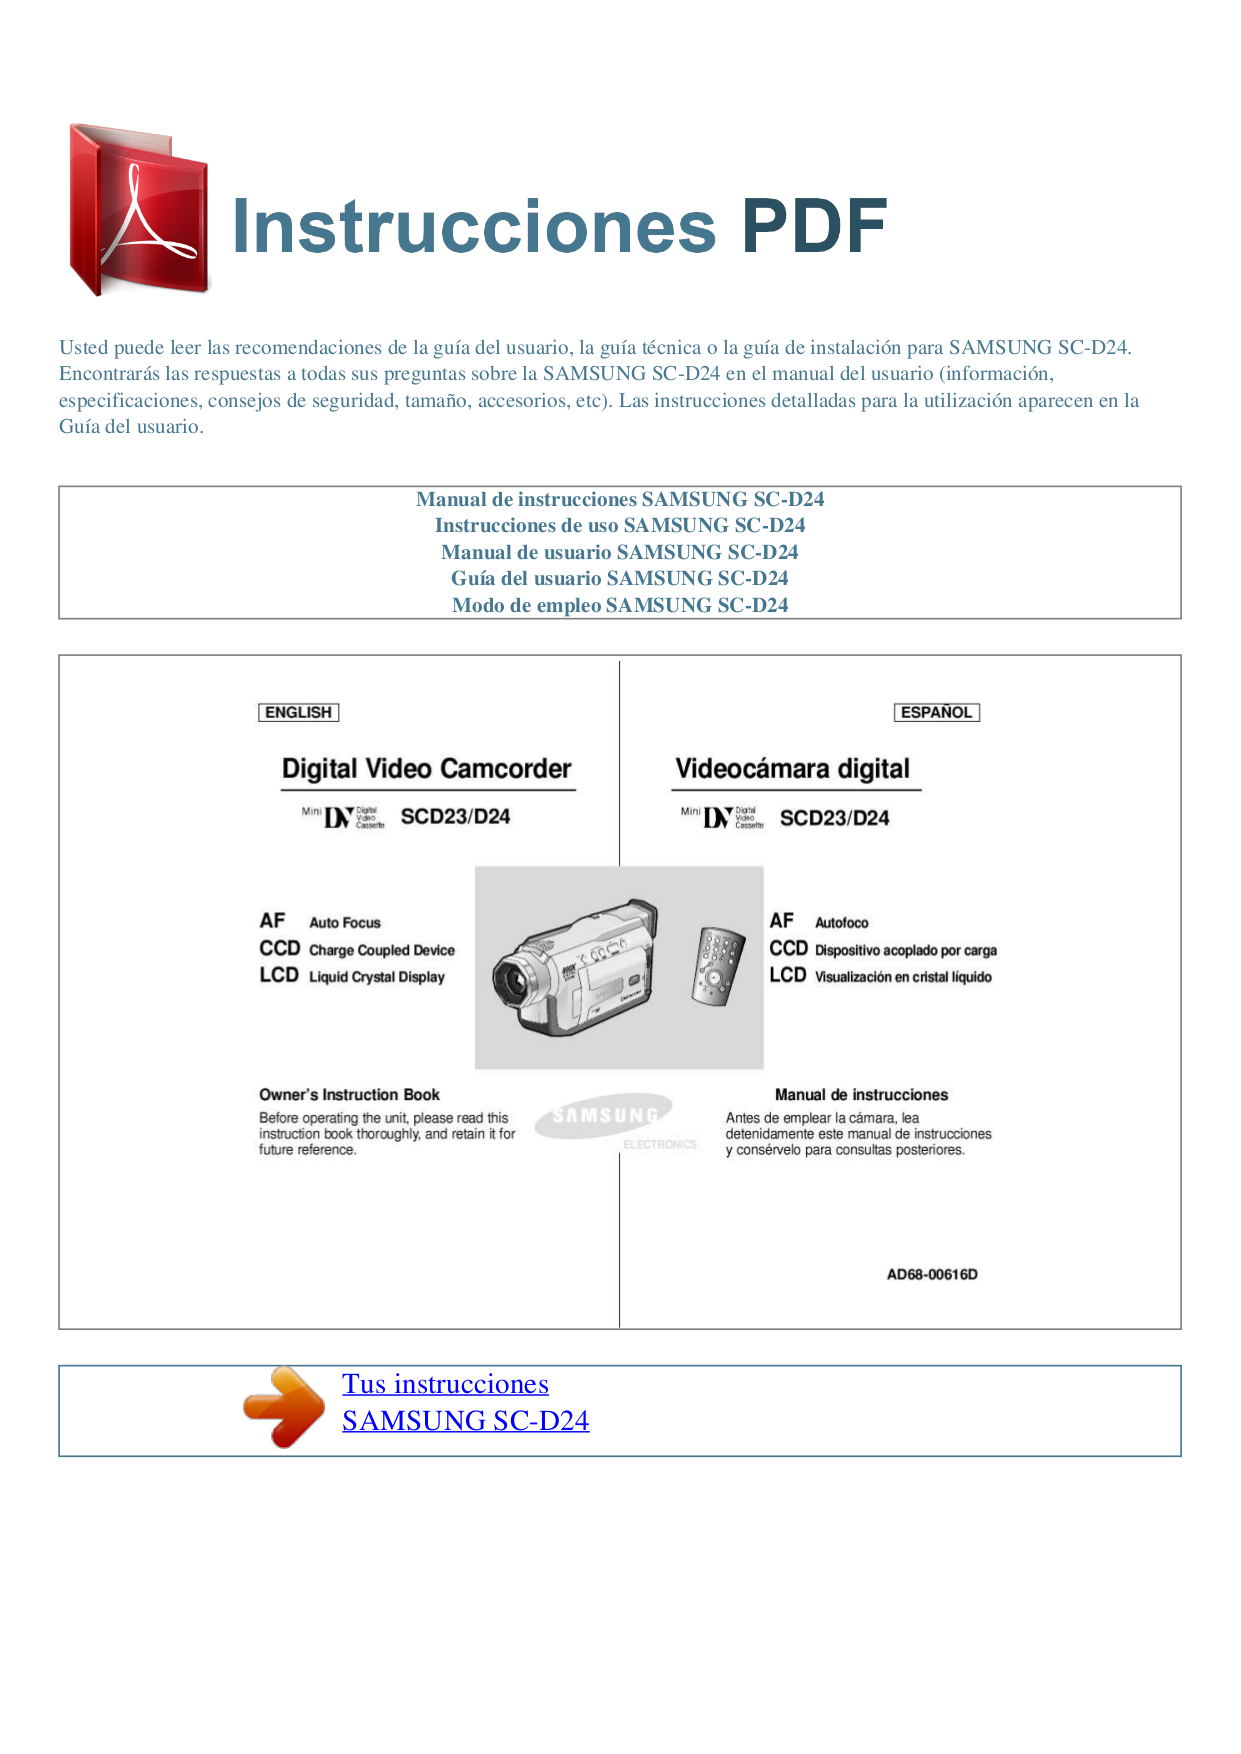 pdf for Samsung Camcorders SC-D24 manual